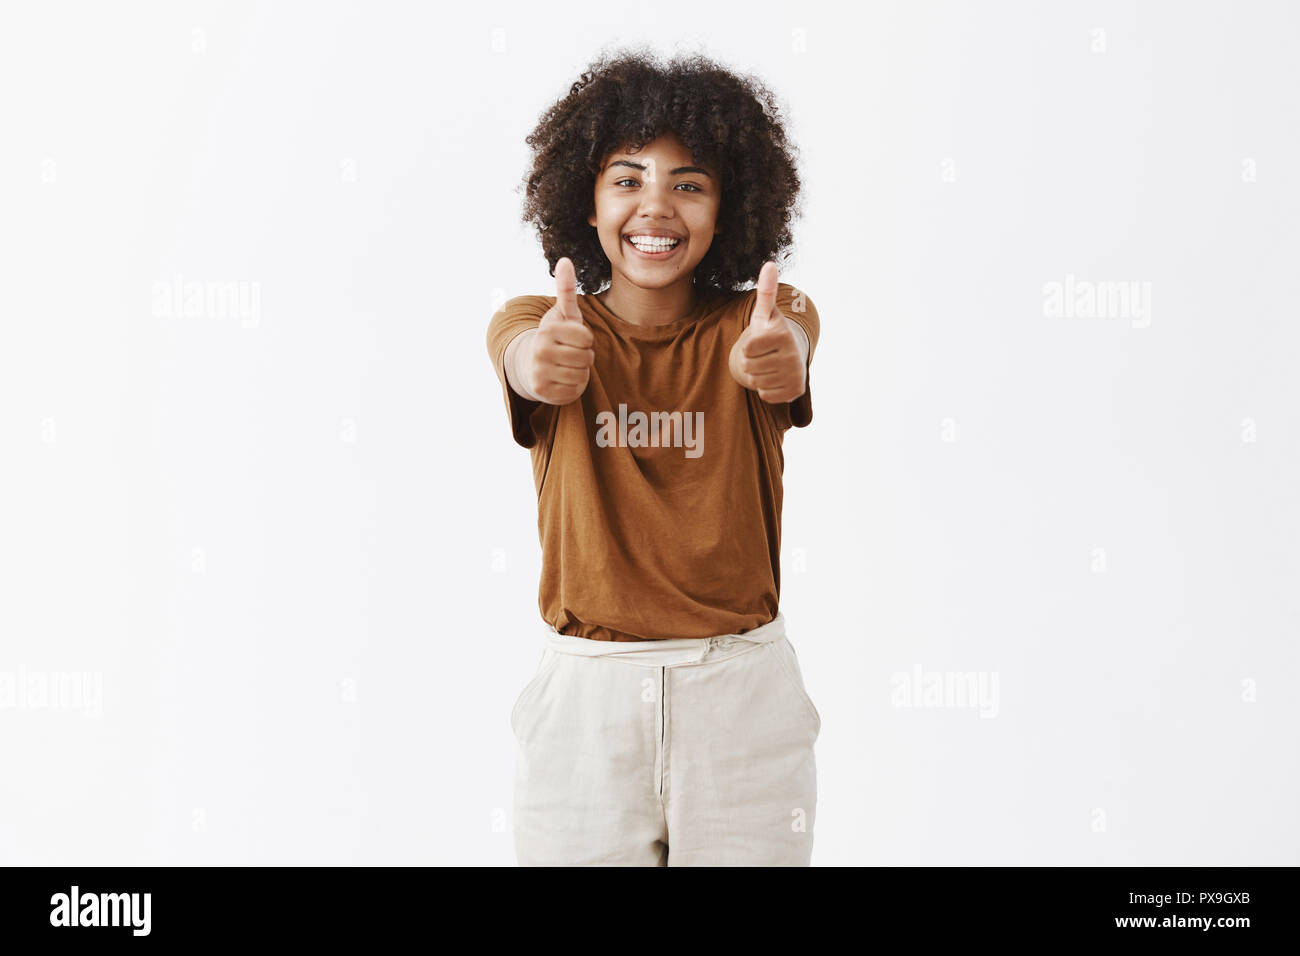 Saying yes to new opportunities. Bright and joyful african american girl with afro hairstyle in stylish brown t-shirt pulling hands towards camera with thumbs up and smiling cheering and supportive - Stock Image